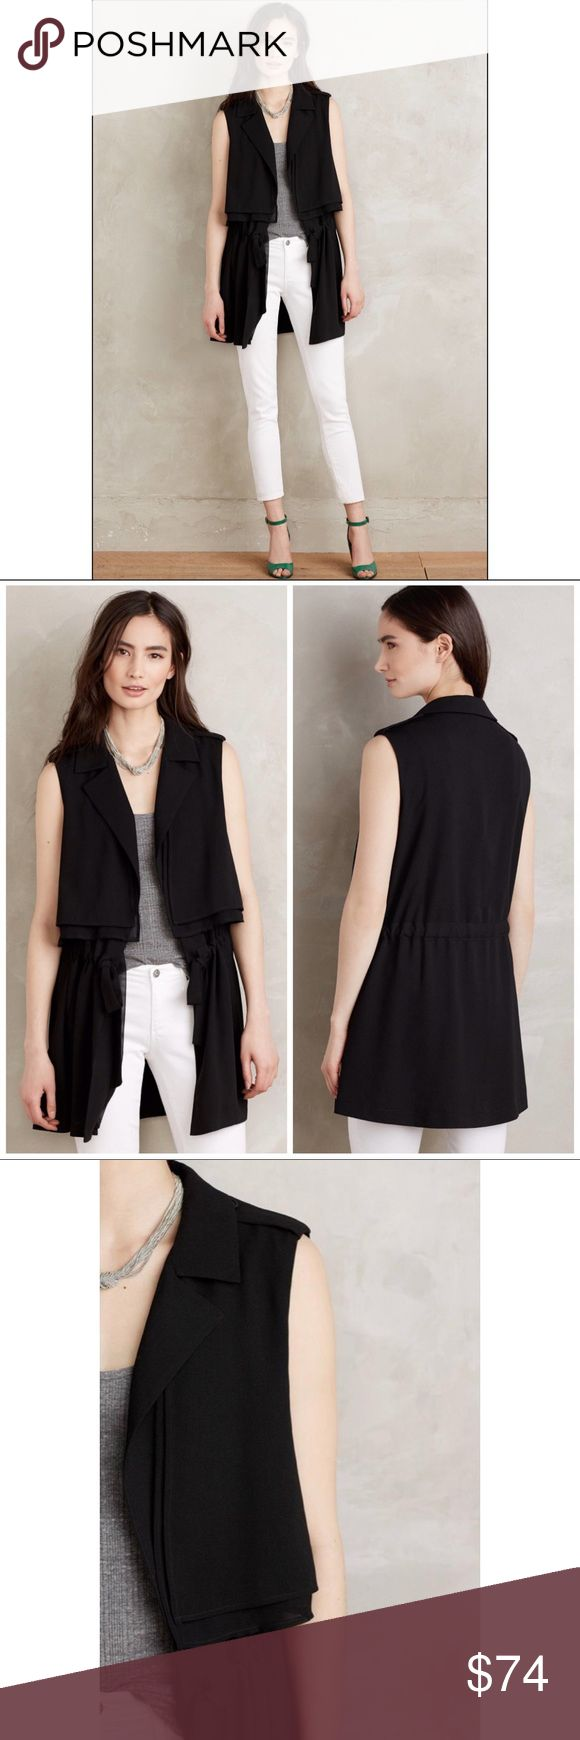 Anthropologie Black River Road Vest Open Front The perfect layering piece!   Drapey, open front vest with a cinched waist you can tie. Perfect wear to work piece and easily dresses up casual day/ evening outfits.   👚Reviews indicate it runs large (I've tried it myself. I typically wear a large or XL, depending on the top, and it fits me well!)    Excellent used condition. You might mistake it for new! Anthropologie Jackets & Coats Vests